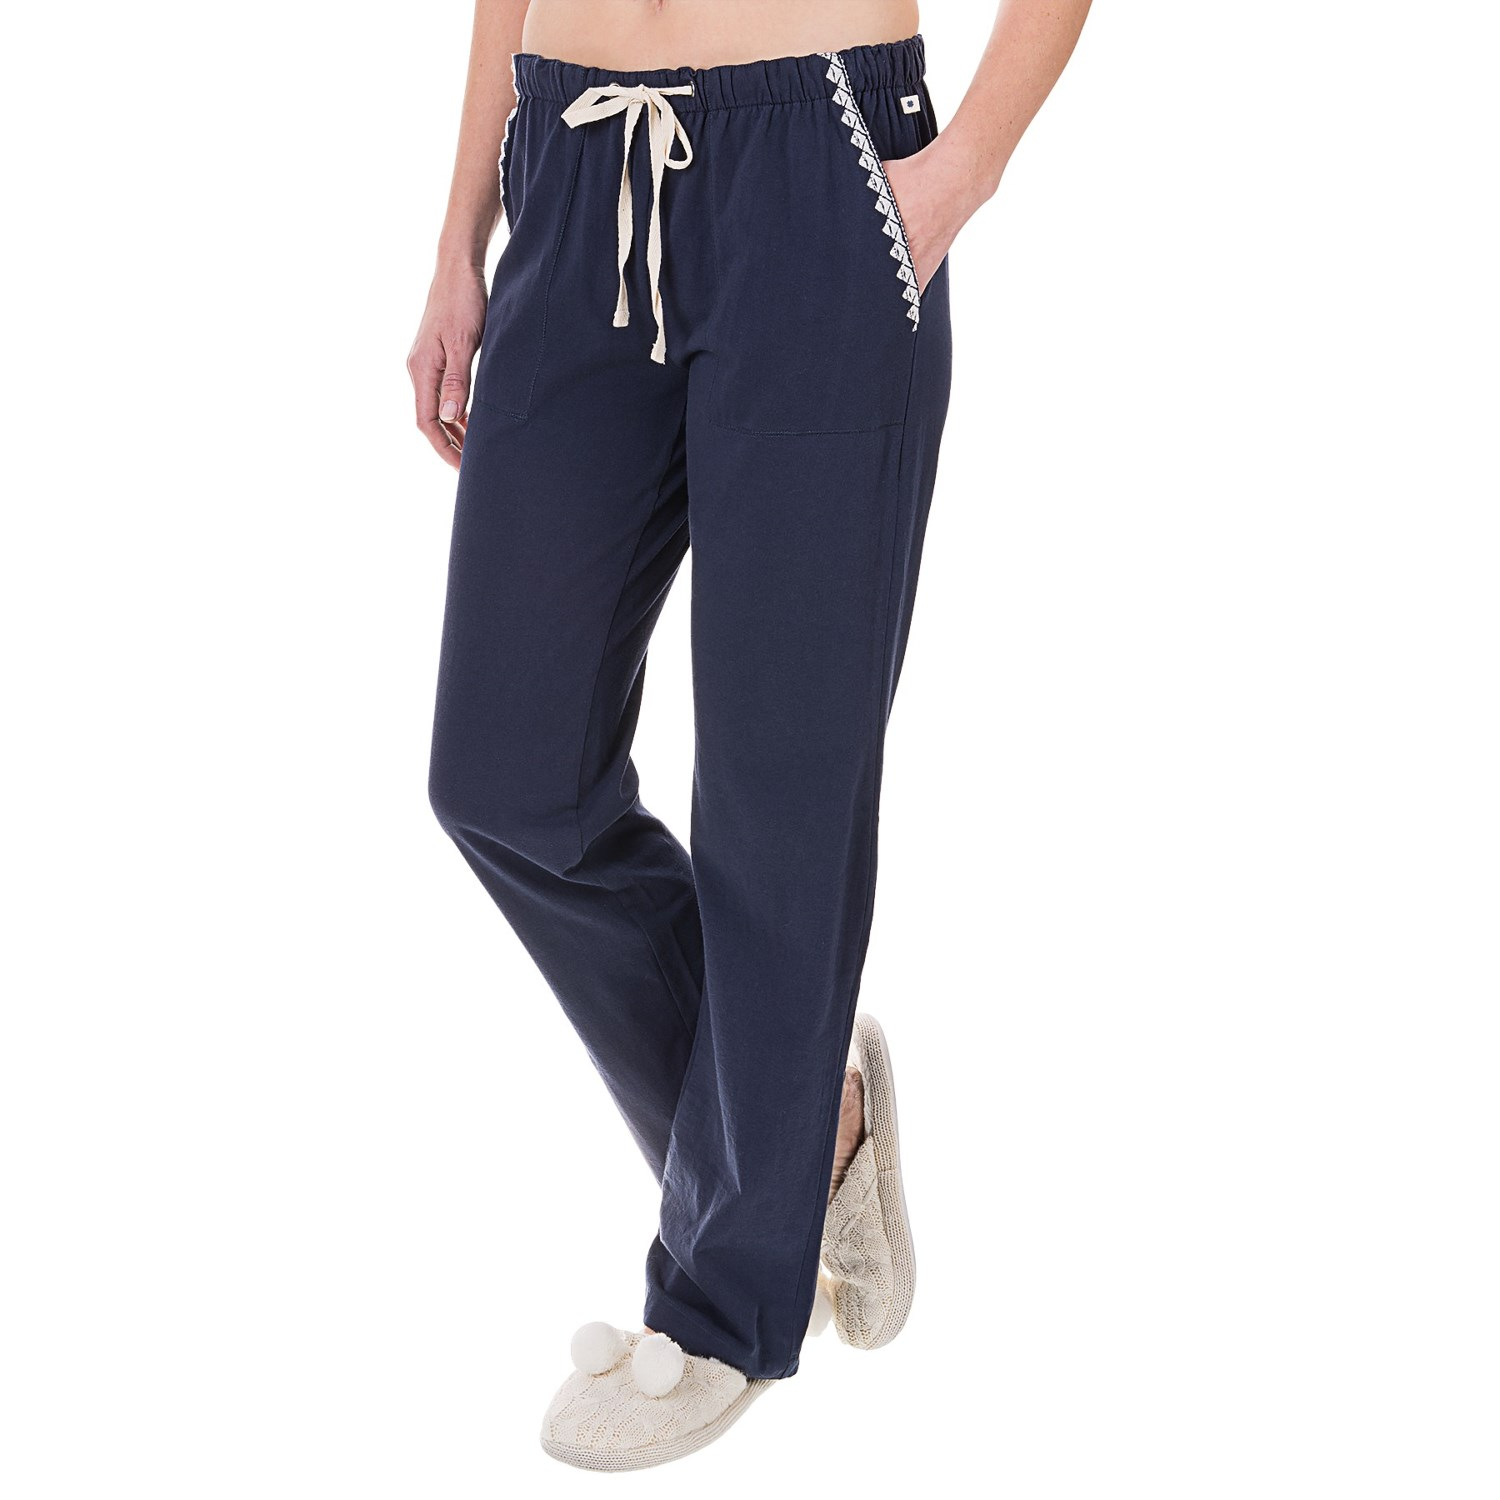 Awesome 29 Brilliant Embroidered Pants Womens Pakistan U2013 Playzoa.com